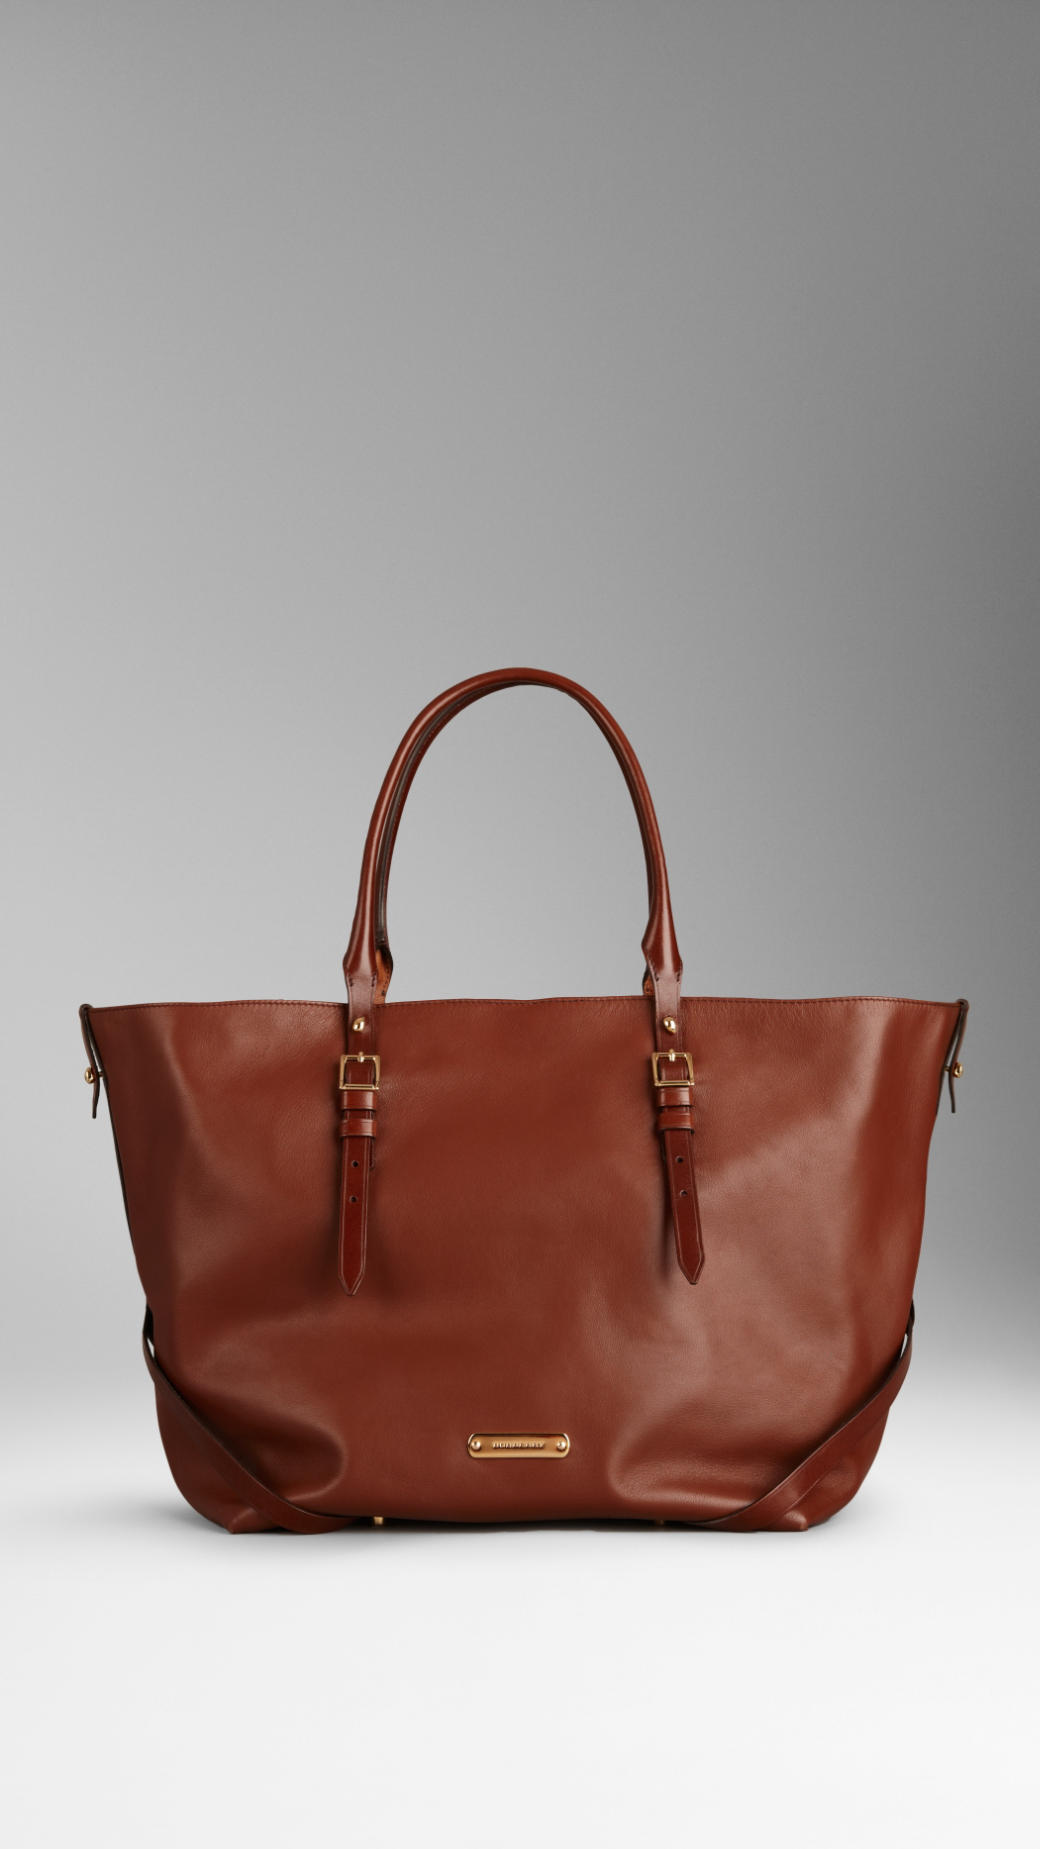 3a65e45a001a Lyst - Burberry Medium Nappa Leather Tote Bag in Brown